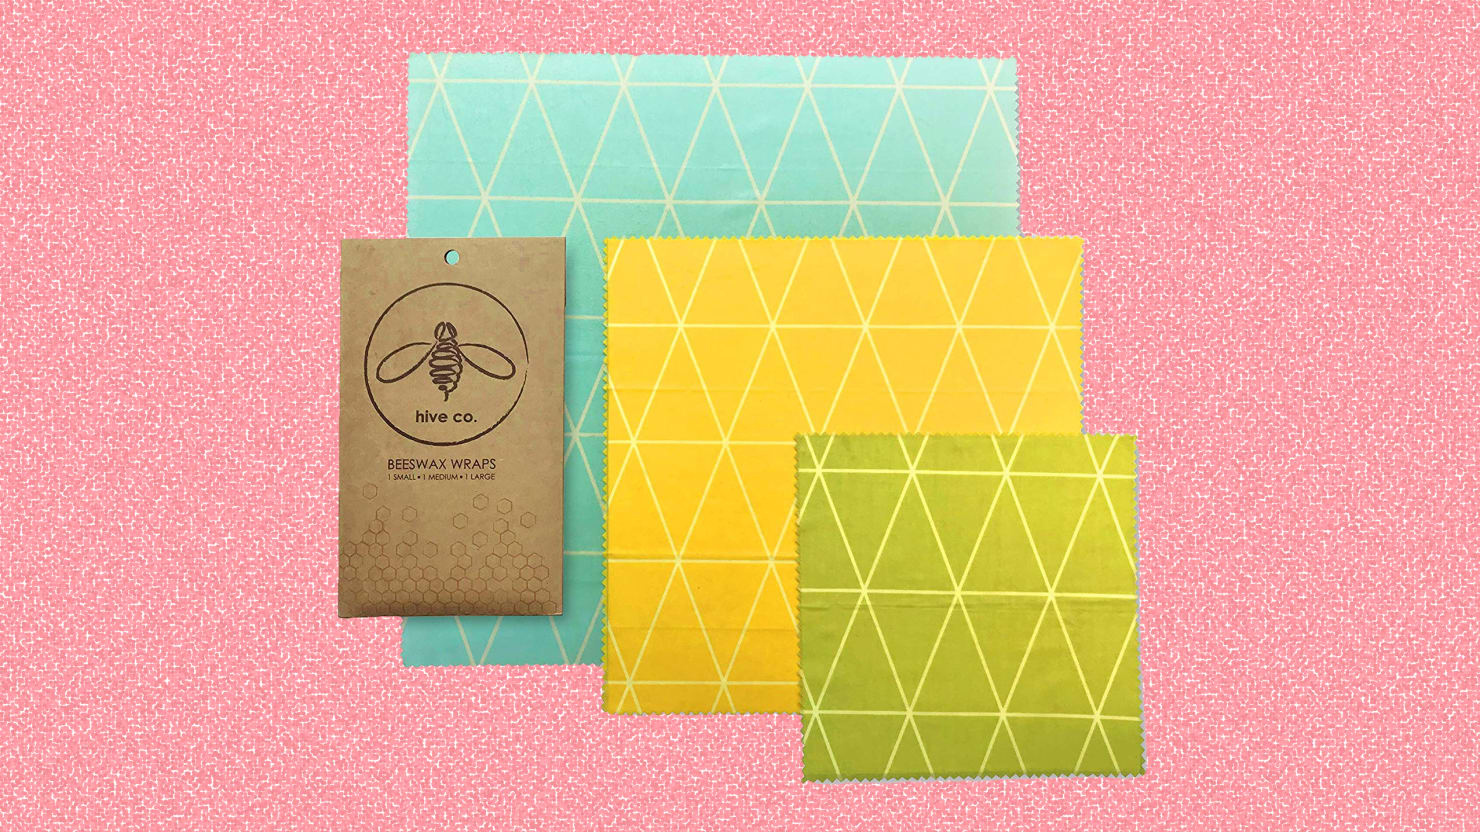 Beeswax Wraps: The Plastic Wrap Alternative You Never Knew You Needed